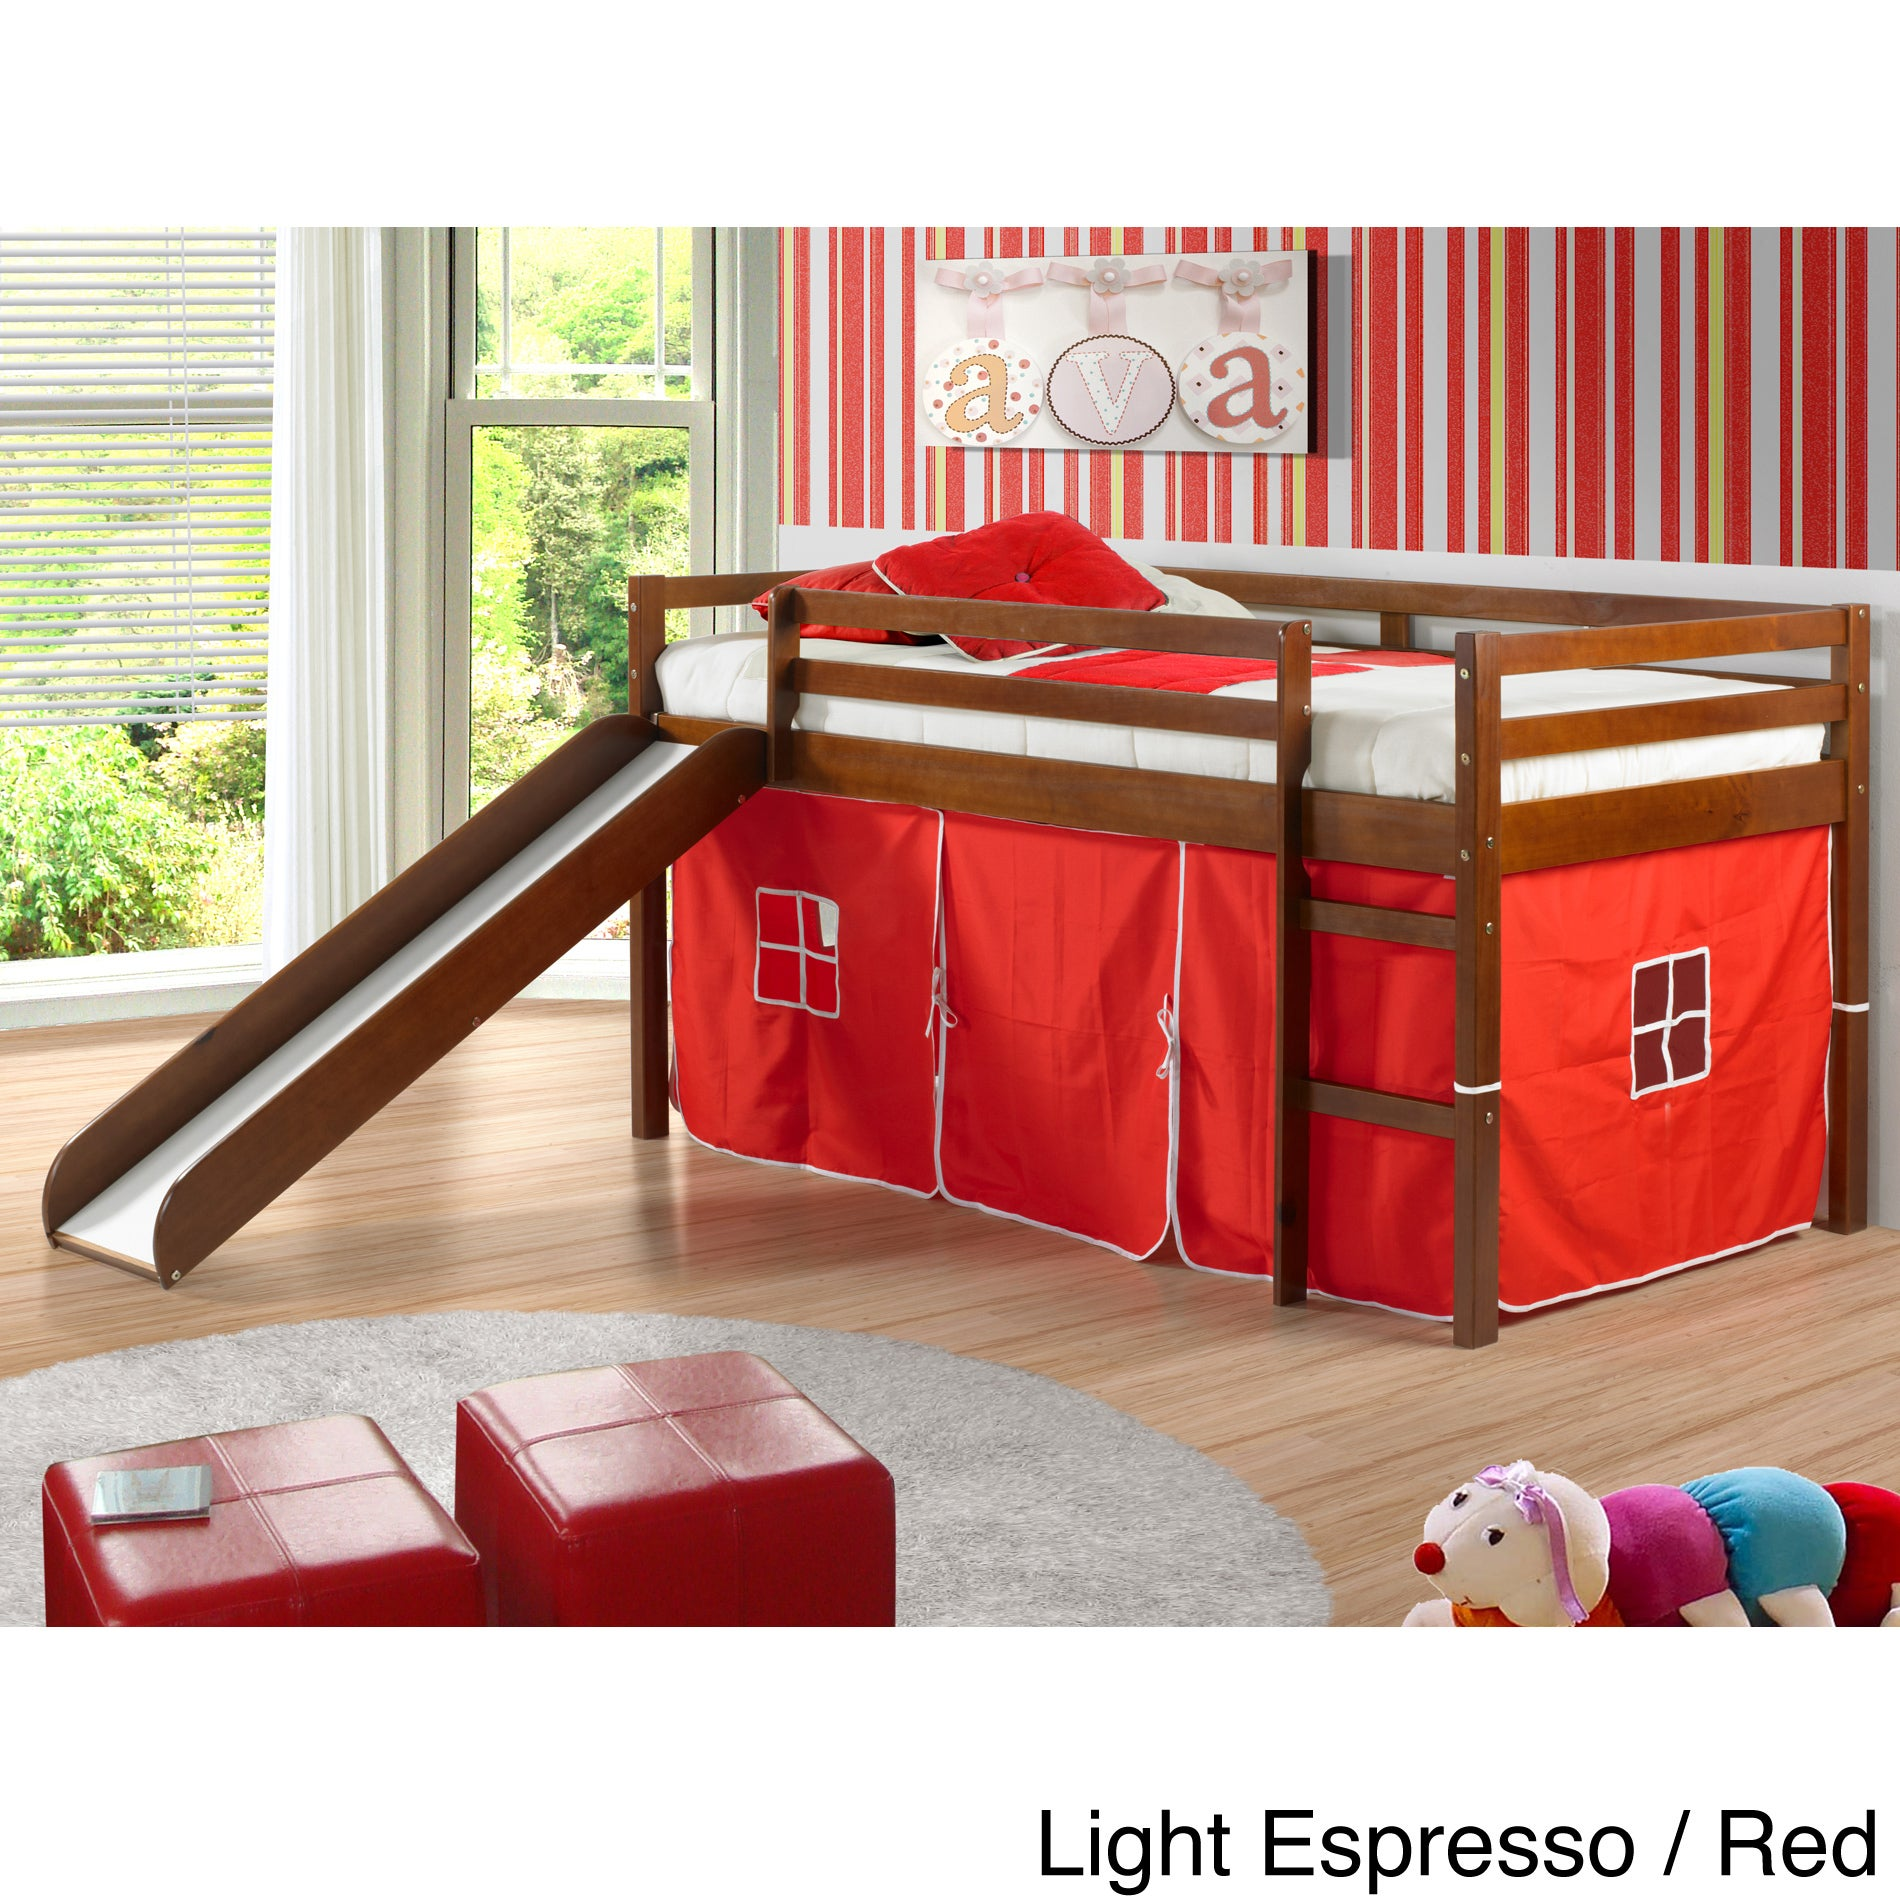 Donco Kids Twin-size Tent Loft Bed with Slide - Free Shipping Today - Overstock.com - 15450130  sc 1 st  Overstock.com & Donco Kids Twin-size Tent Loft Bed with Slide - Free Shipping ...